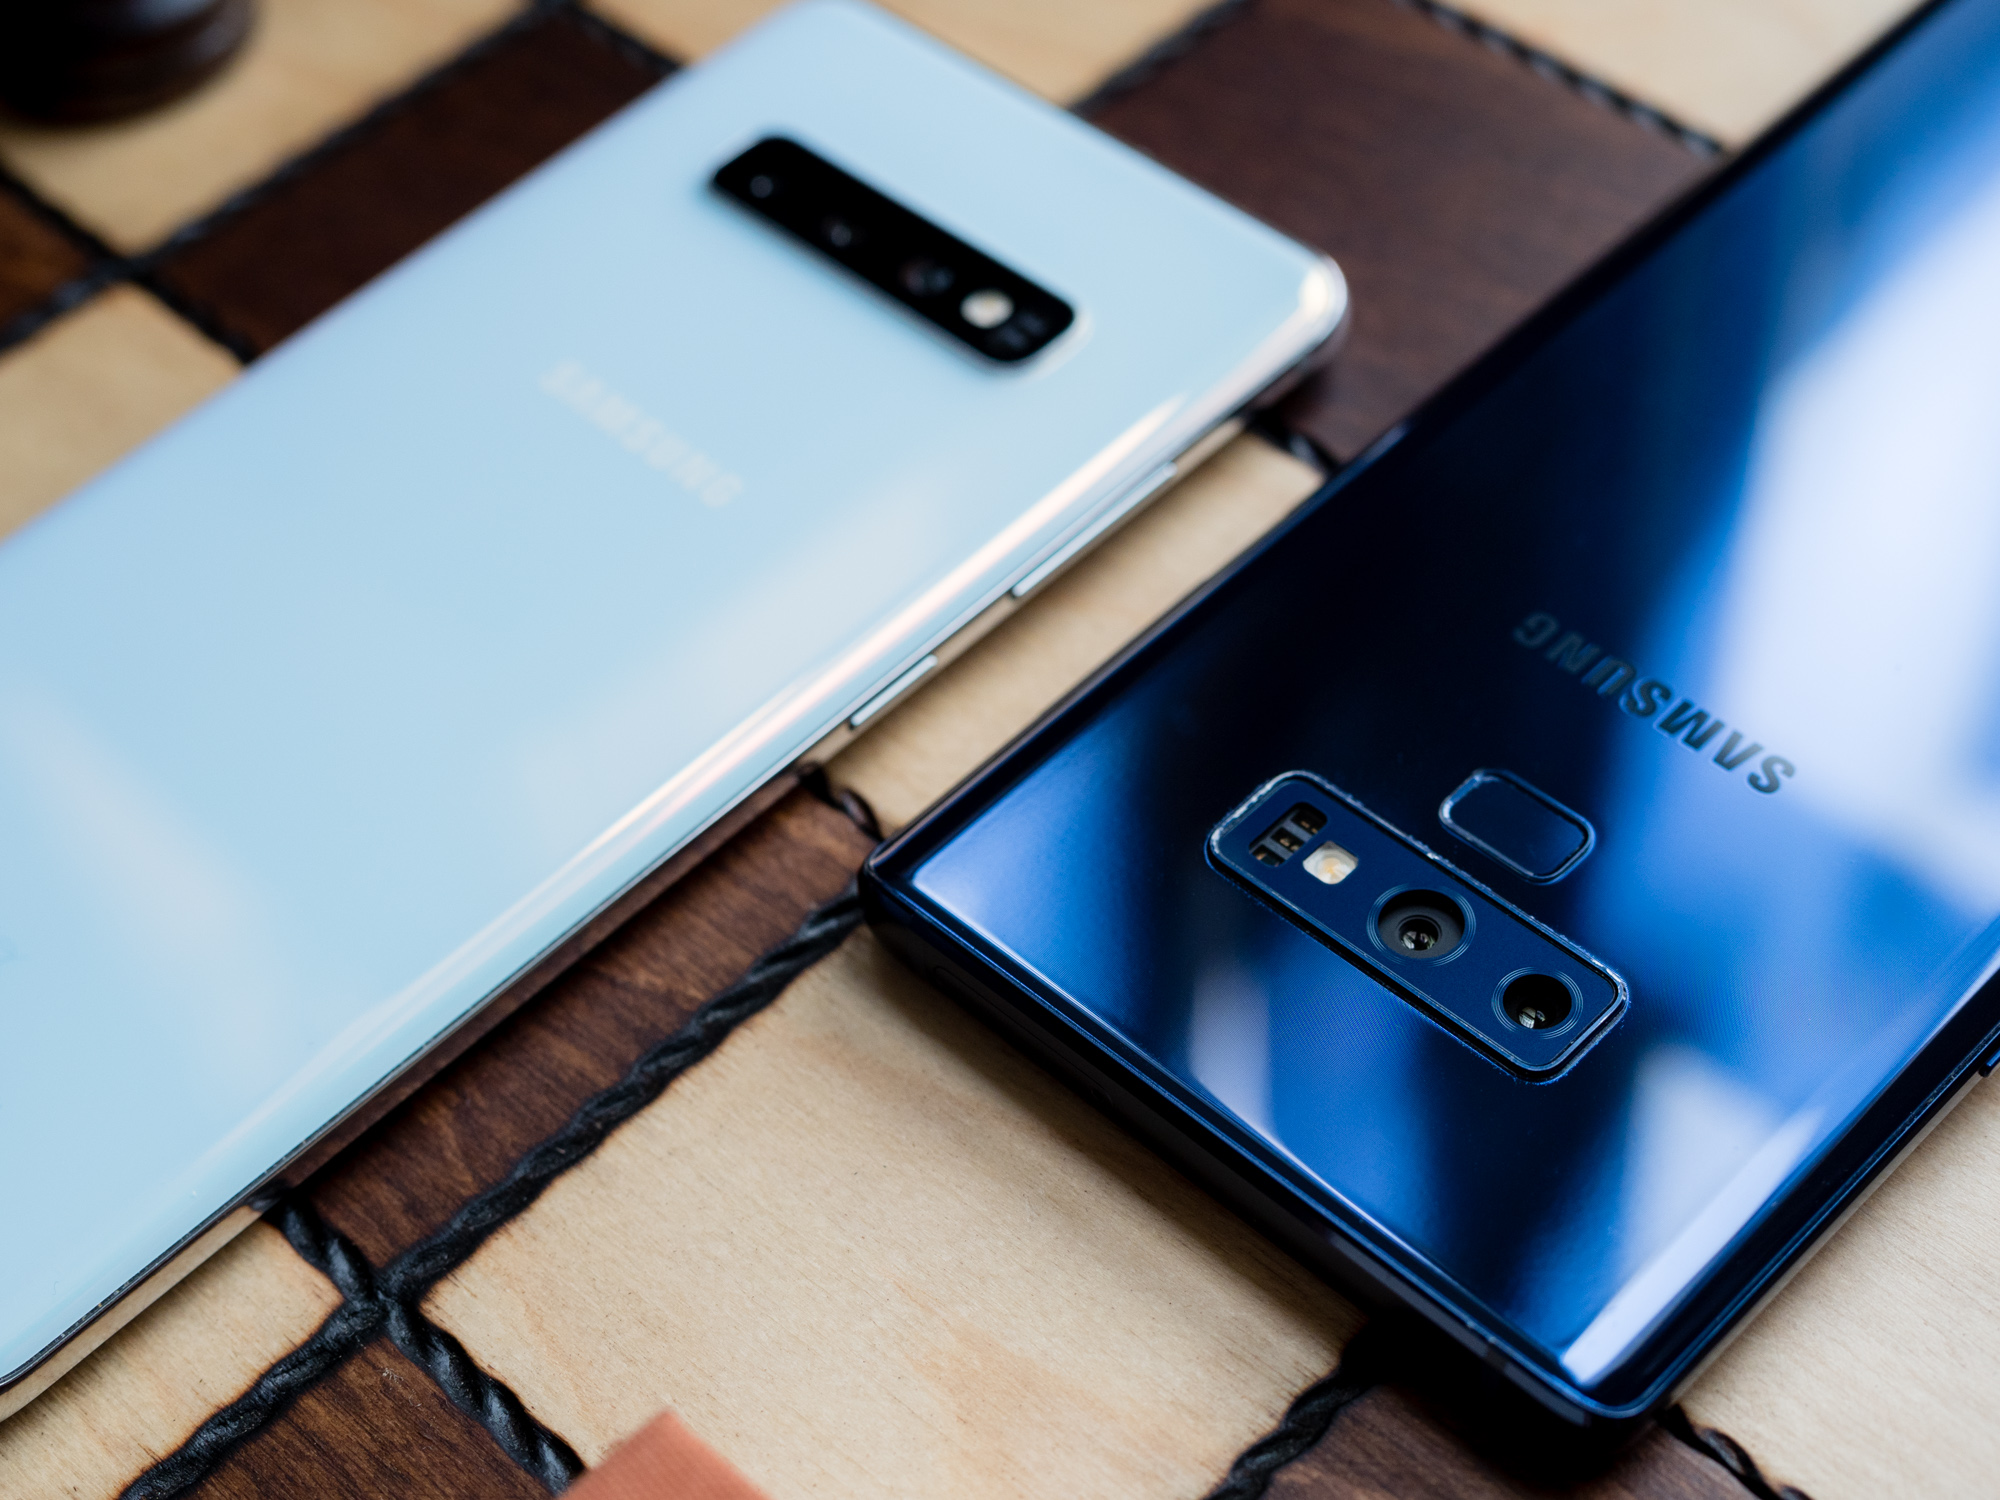 samsung galaxy note 9 galaxy s10 plus na abonament play plus orange t-mobile 2